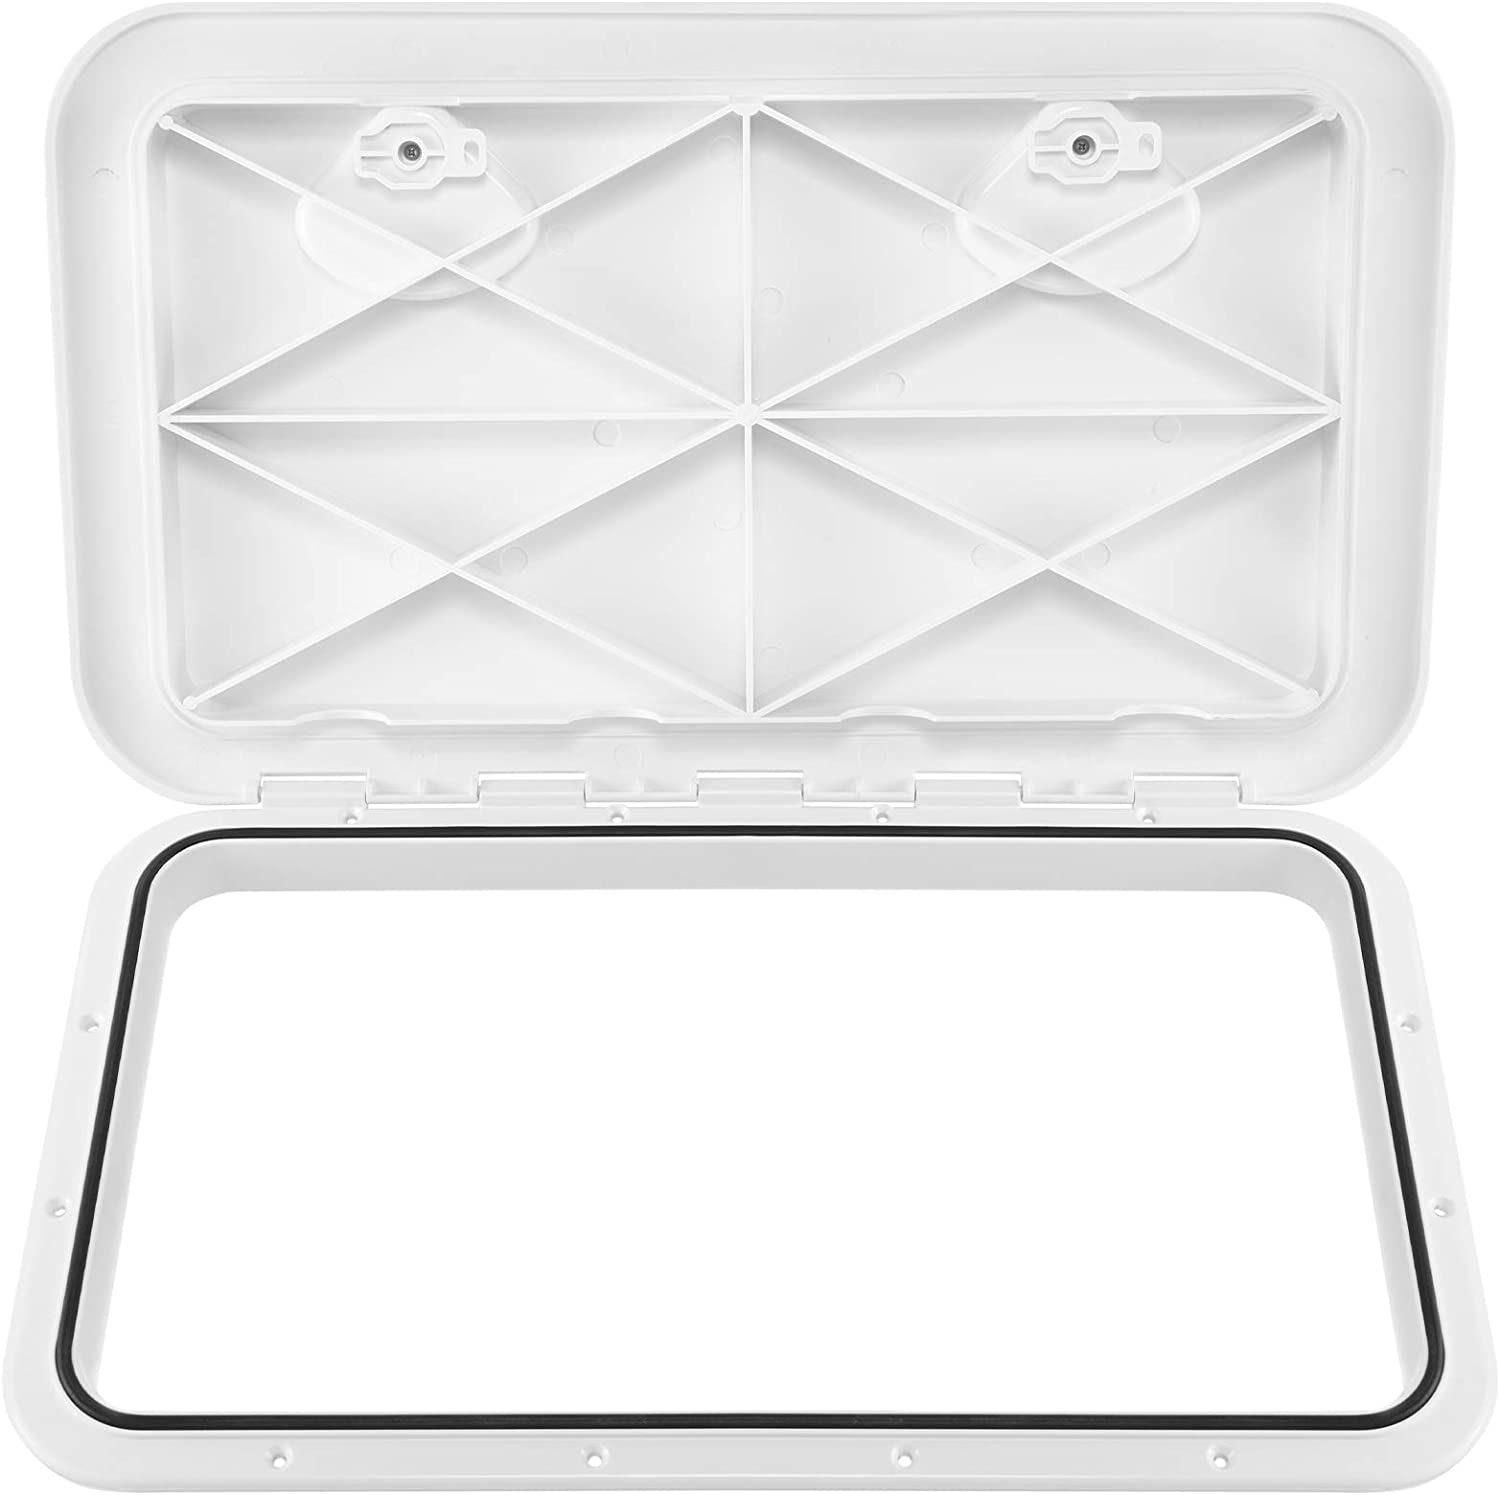 Max 68% OFF San Antonio Mall CO-Z 24x14 Inch Marine Access Durable Hatch Boat with ABS